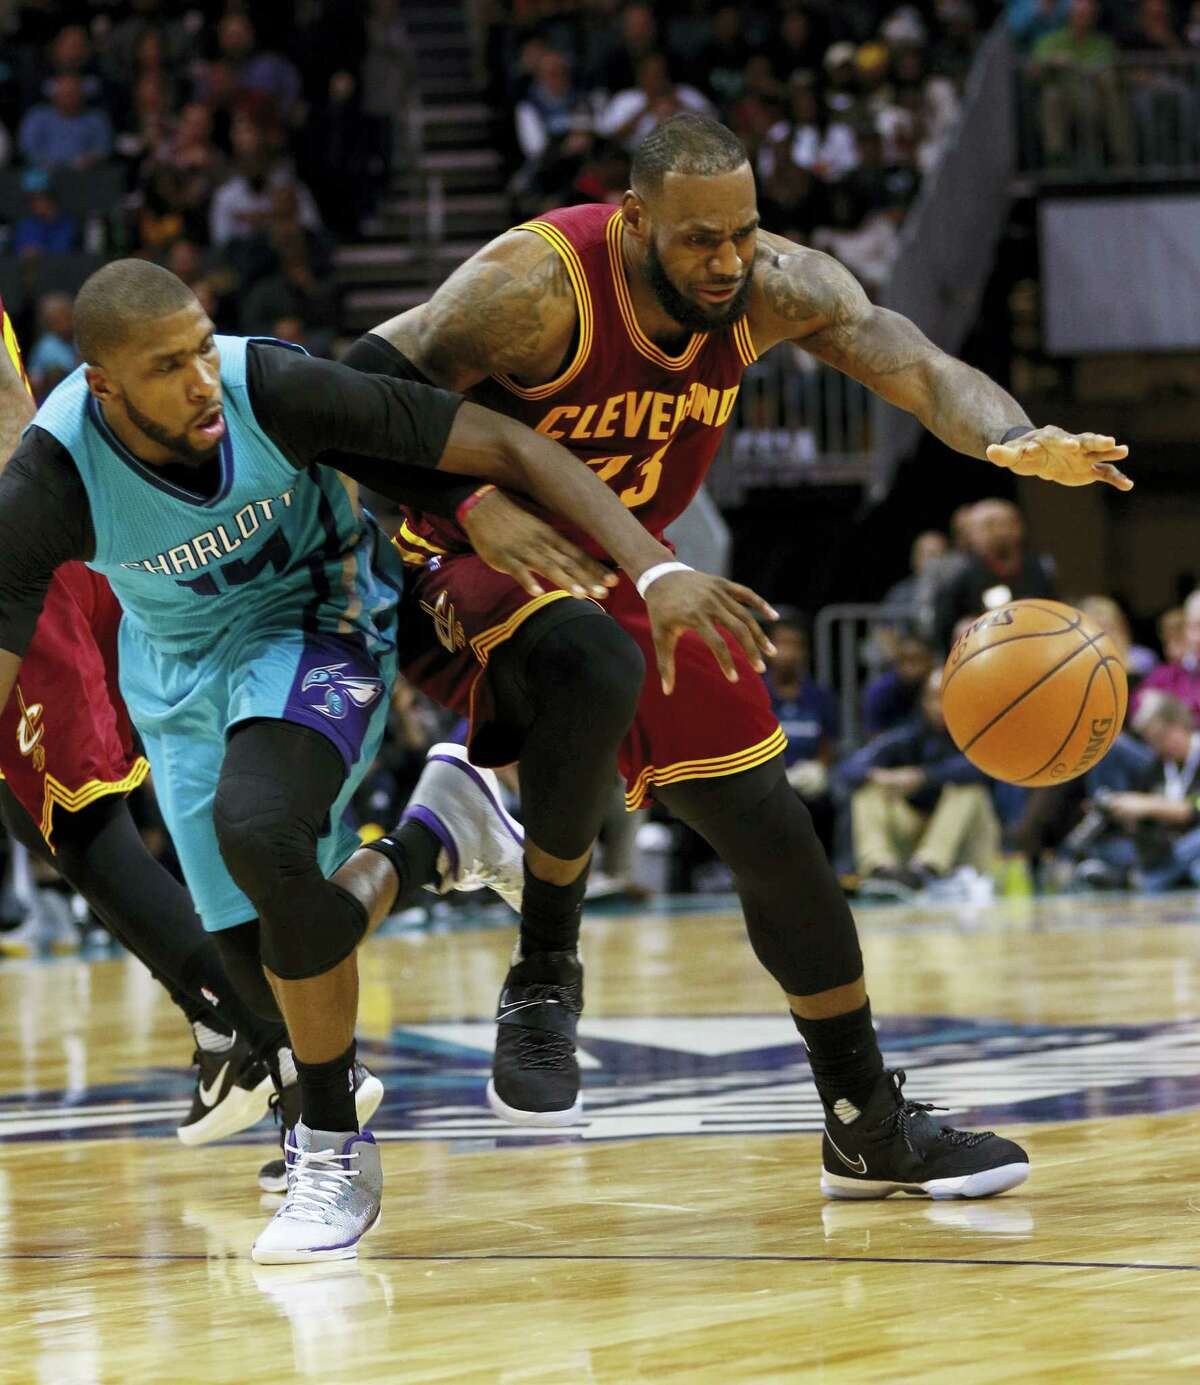 Cleveland Cavaliers forward LeBron James, right, keeps the ball from Charlotte Hornets forward Michael Kidd-Gilchrist in the second half of an NBA basketball game in Charlotte, N.C. on Dec. 31, 2016. Cleveland won 121-109.